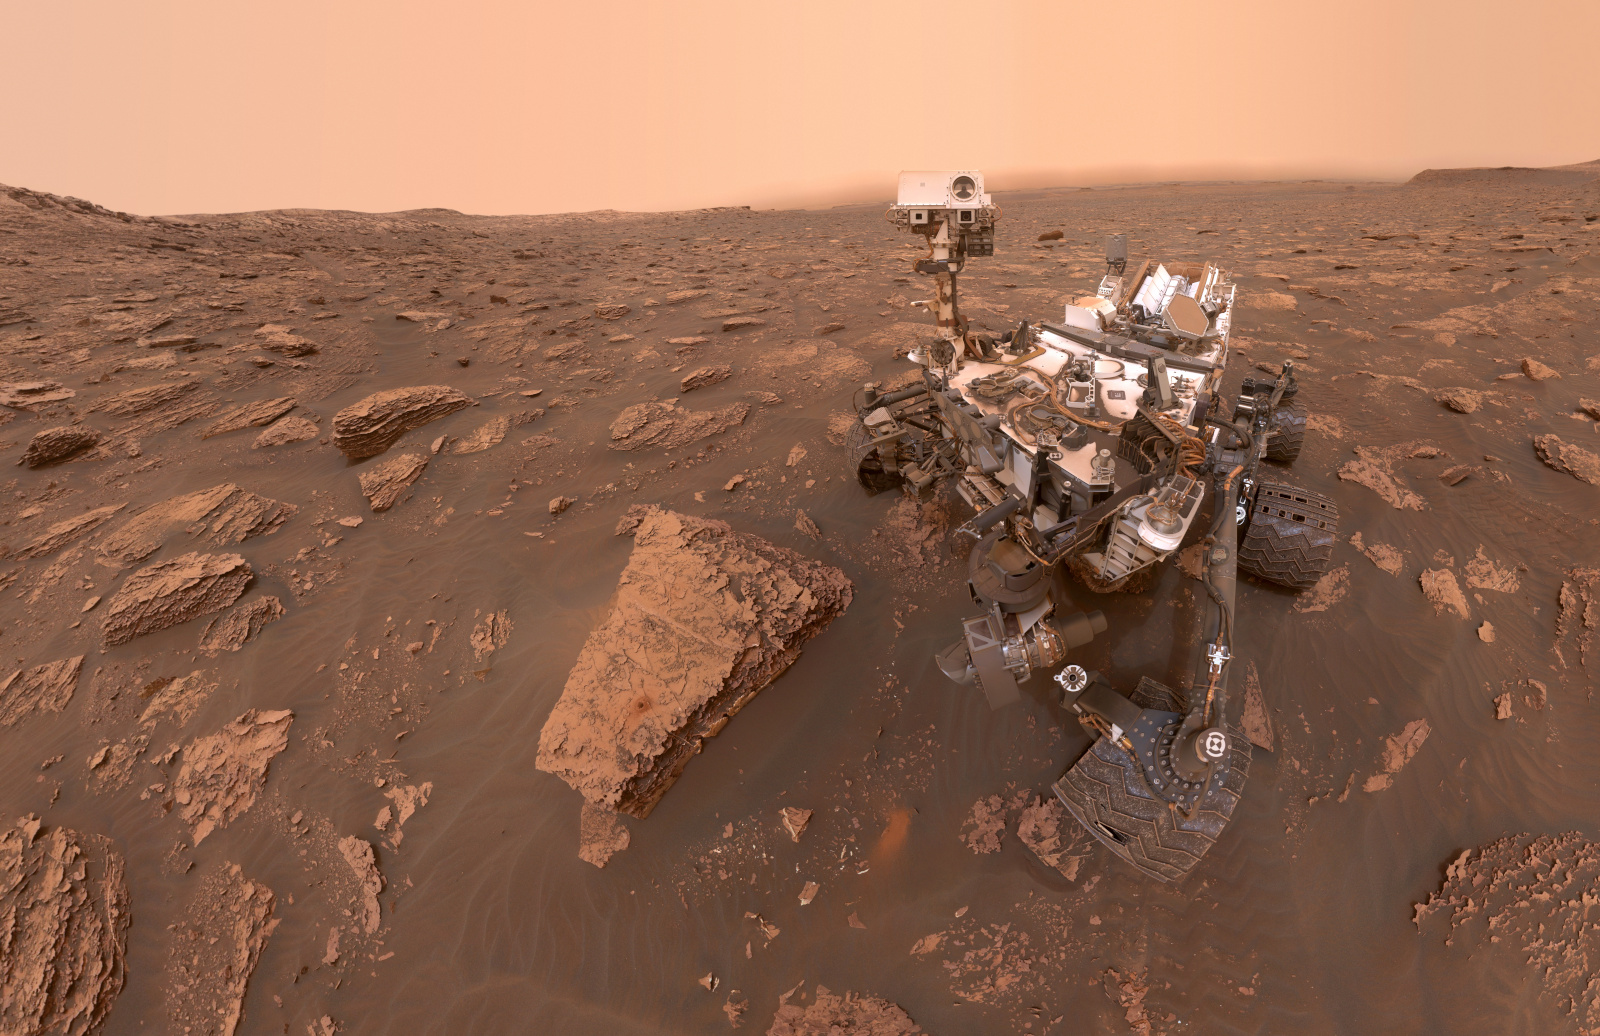 Curiosity rover finds evidence of ancient megafloods on Mars | Engadget